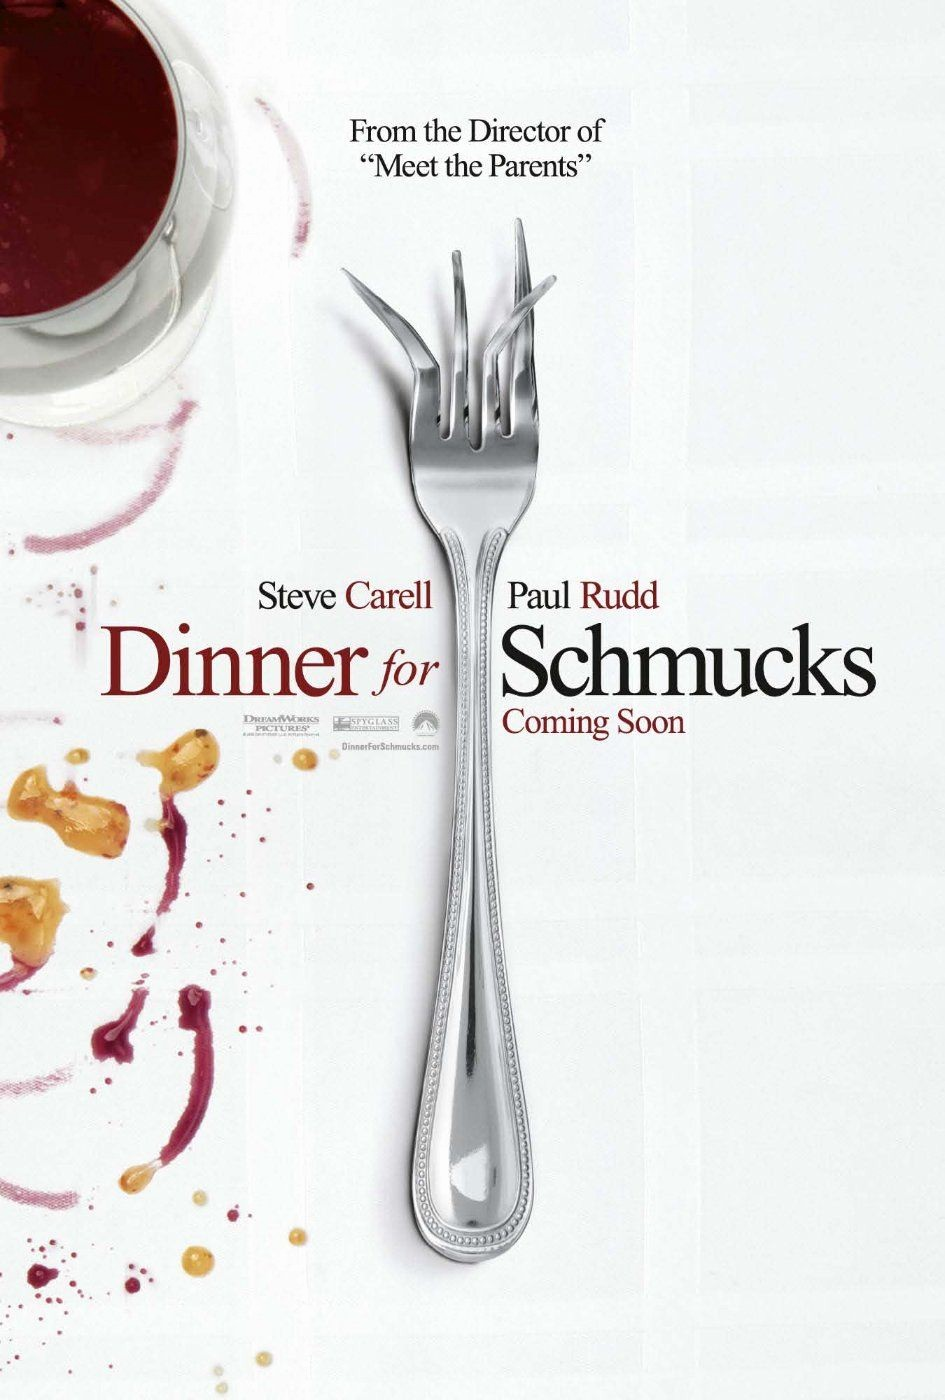 Dinner and A Movie Flyer Beautiful Dinner for Schmucks 3 Of 3 Extra Movie Poster